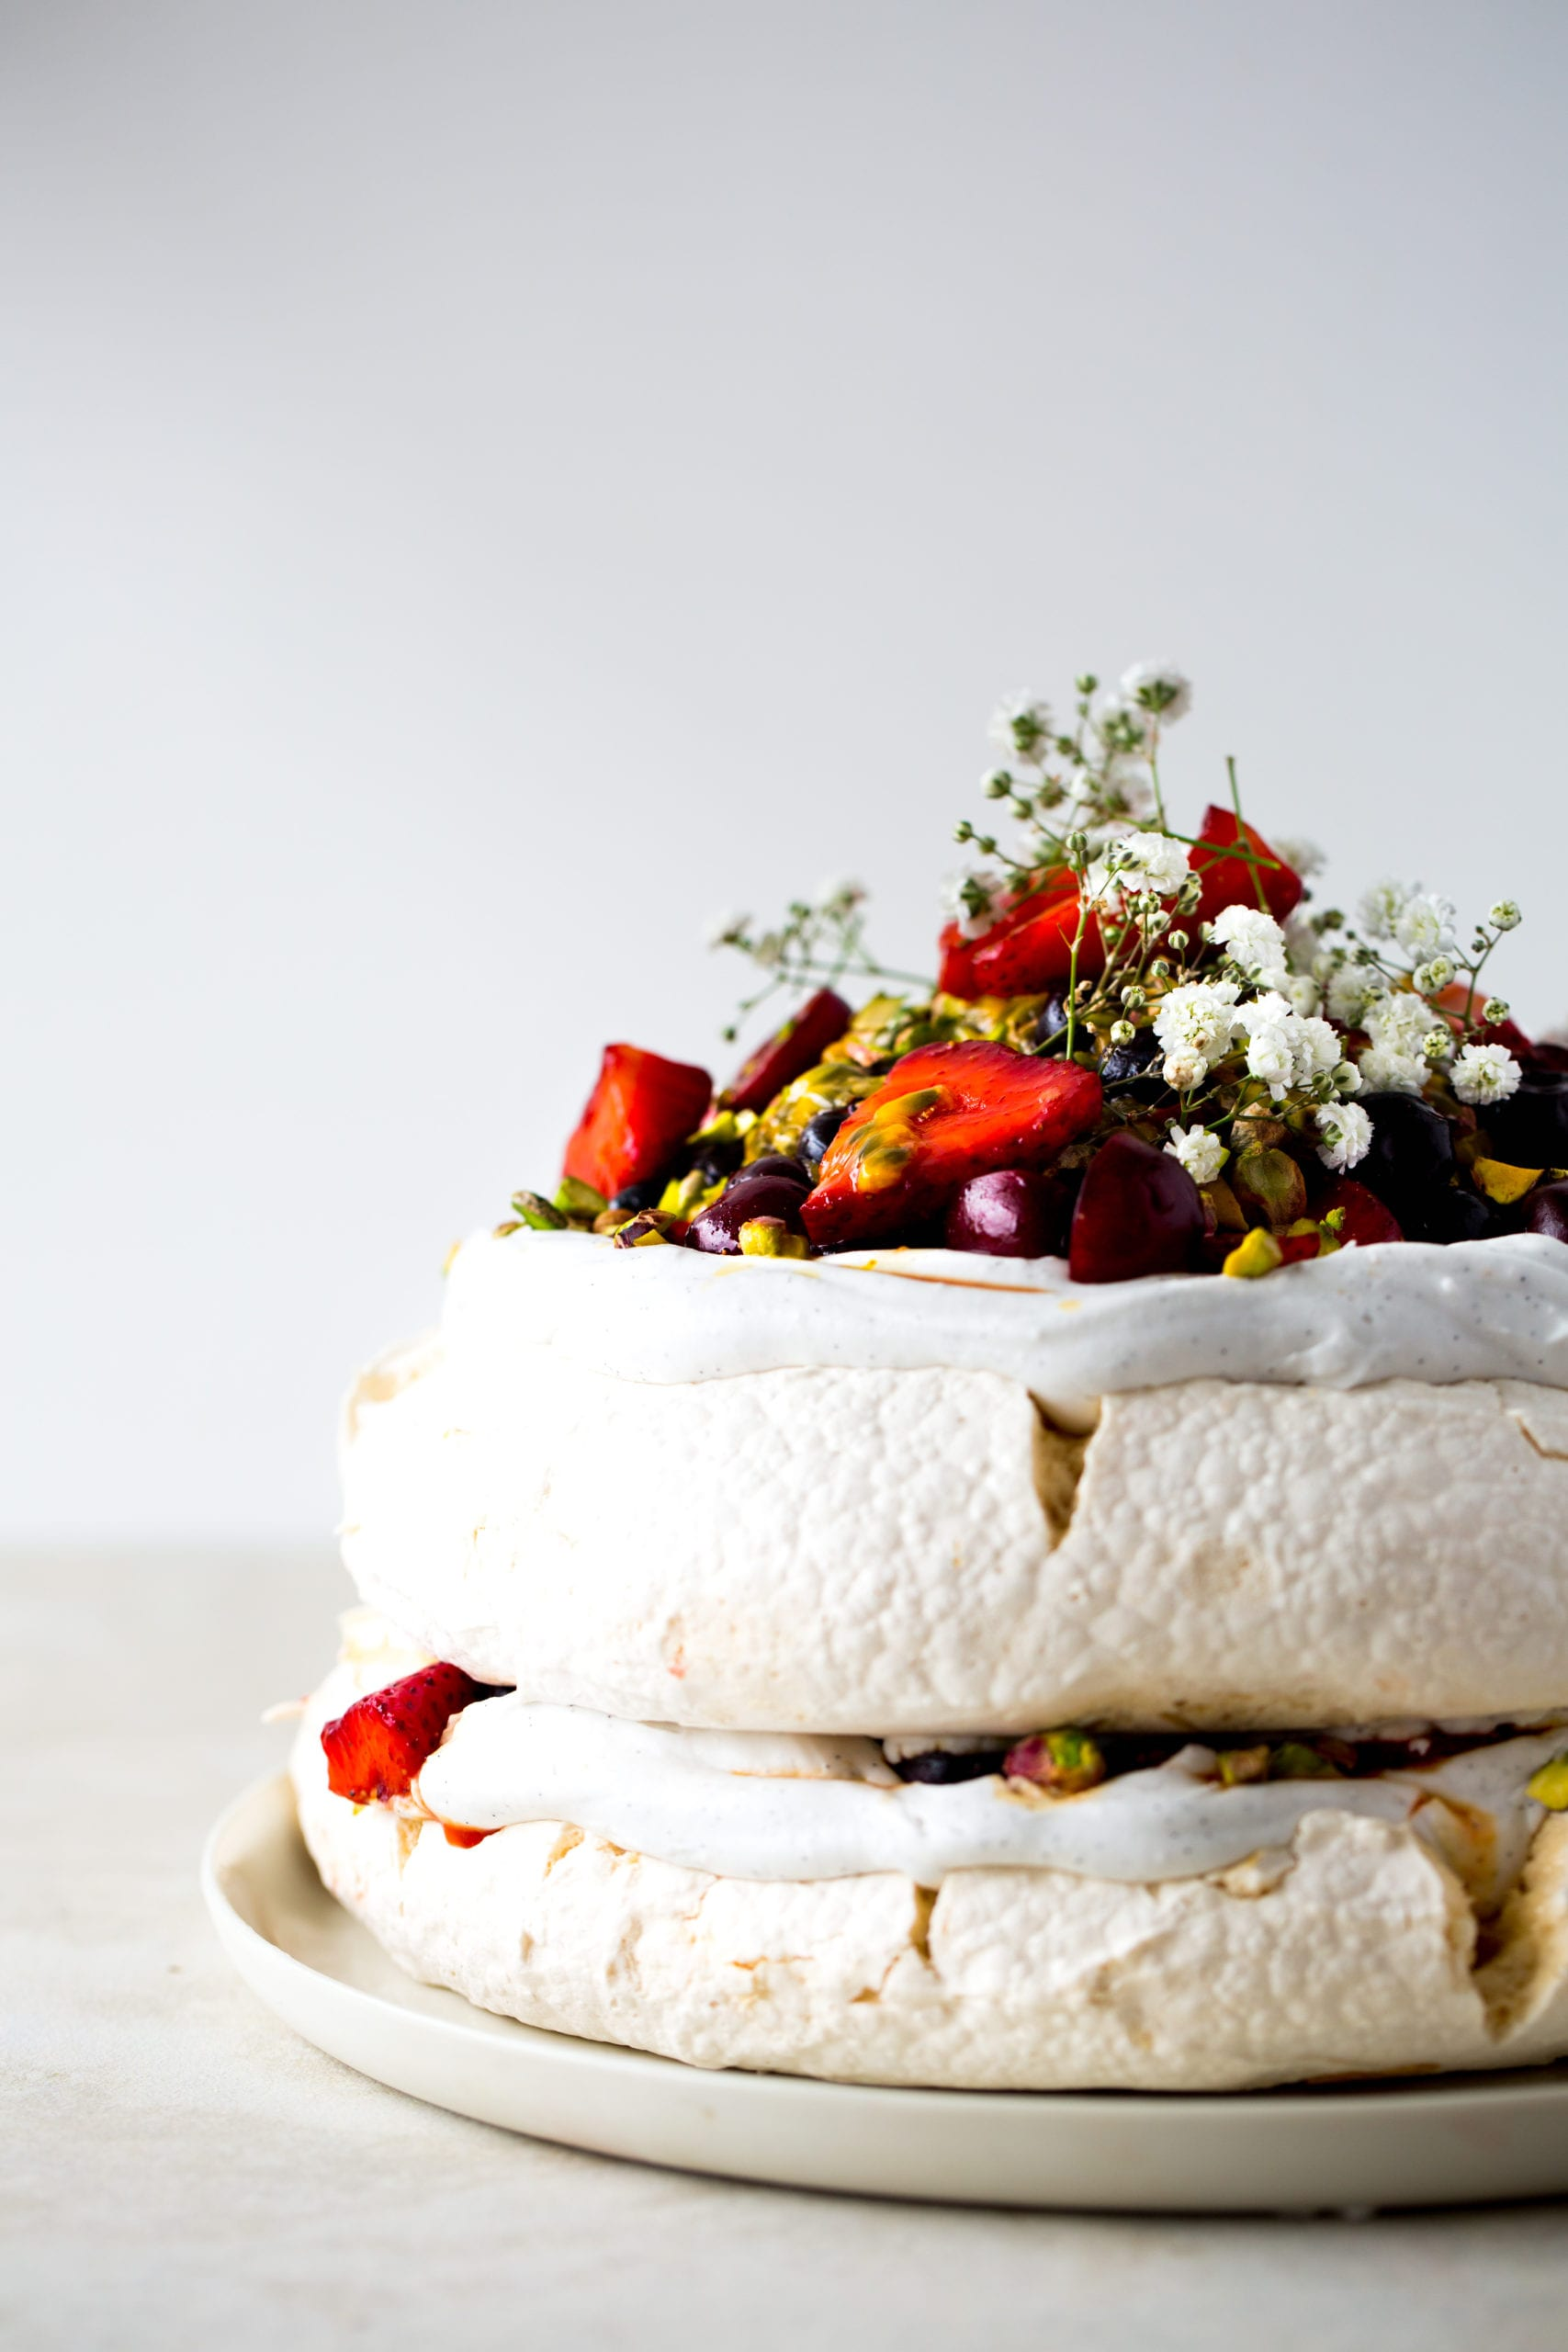 Vegan Pavlova With Saffron Berries Passionfruit Pistachios Gf The Floured Kitchen You can use fresh or frozen berries, so this recipe is tasty no matter the season! vegan pavlova with saffron berries passionfruit pistachios gf the floured kitchen